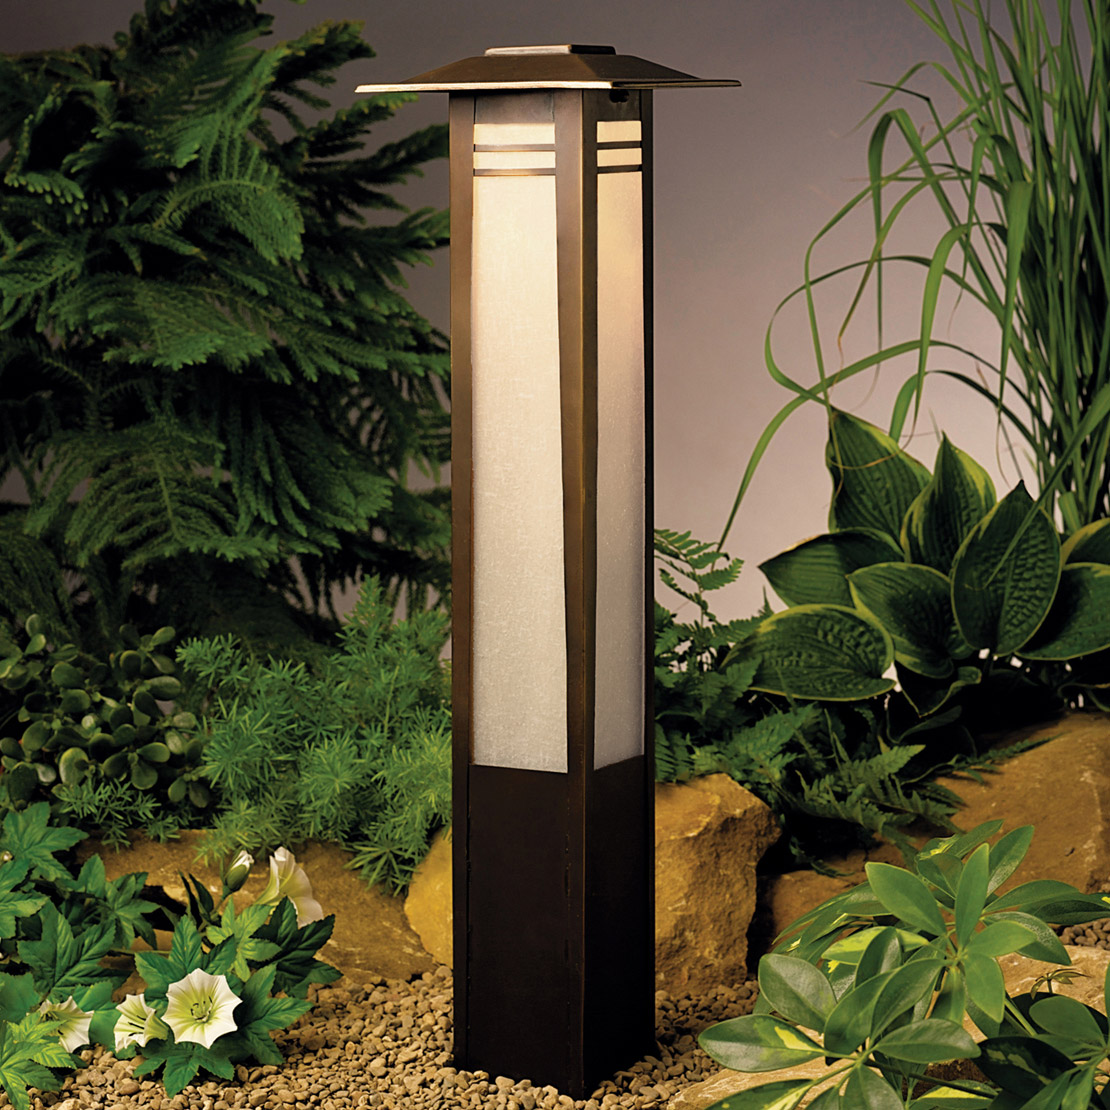 Kichler 15392oz zen garden 12v landscape bollard light for Eclairage exterieur 12v